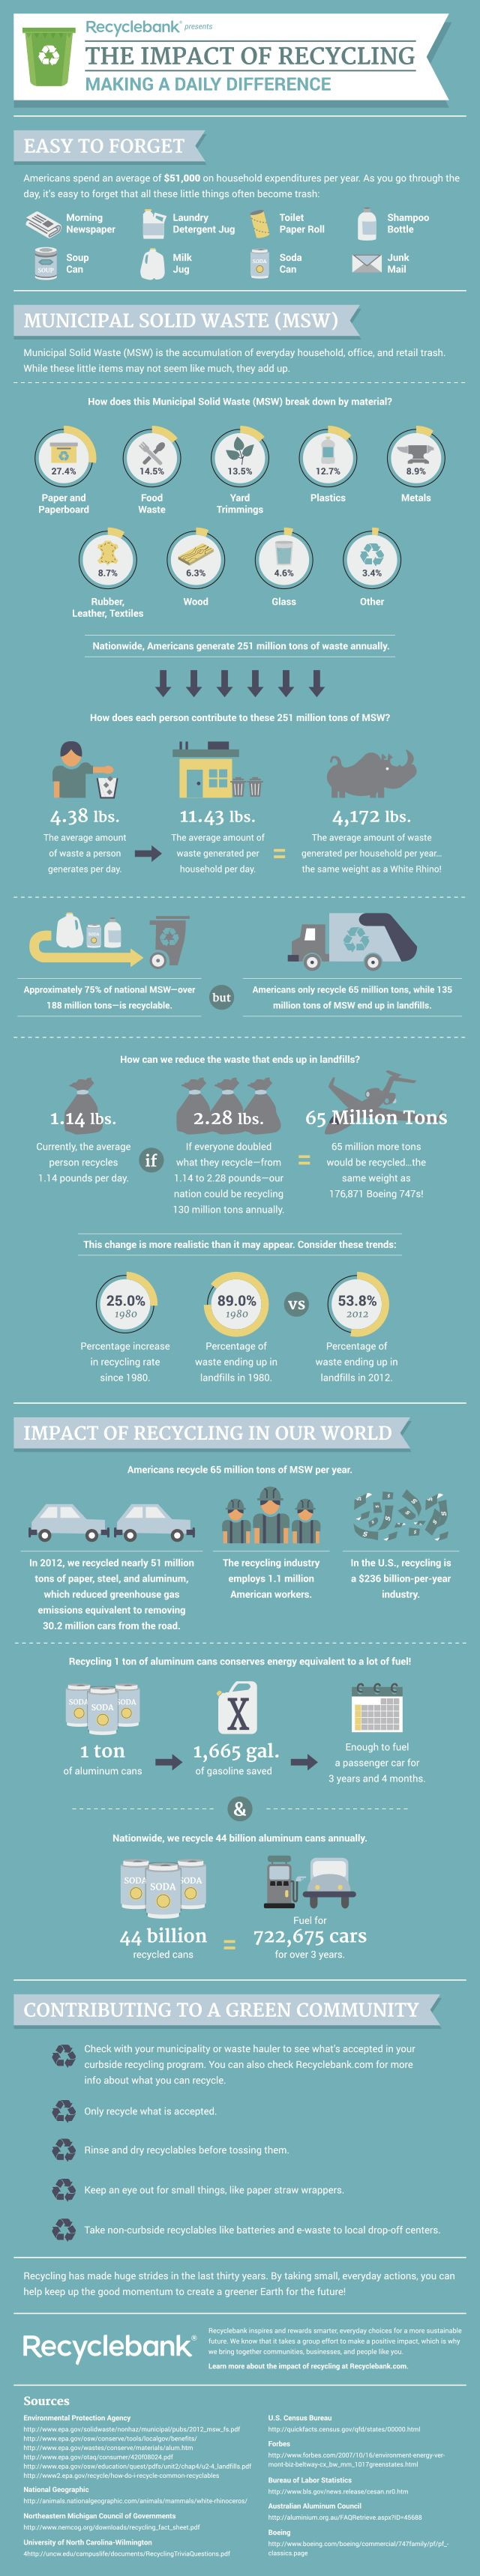 The Impact Of Recycling: Making A Daily Difference